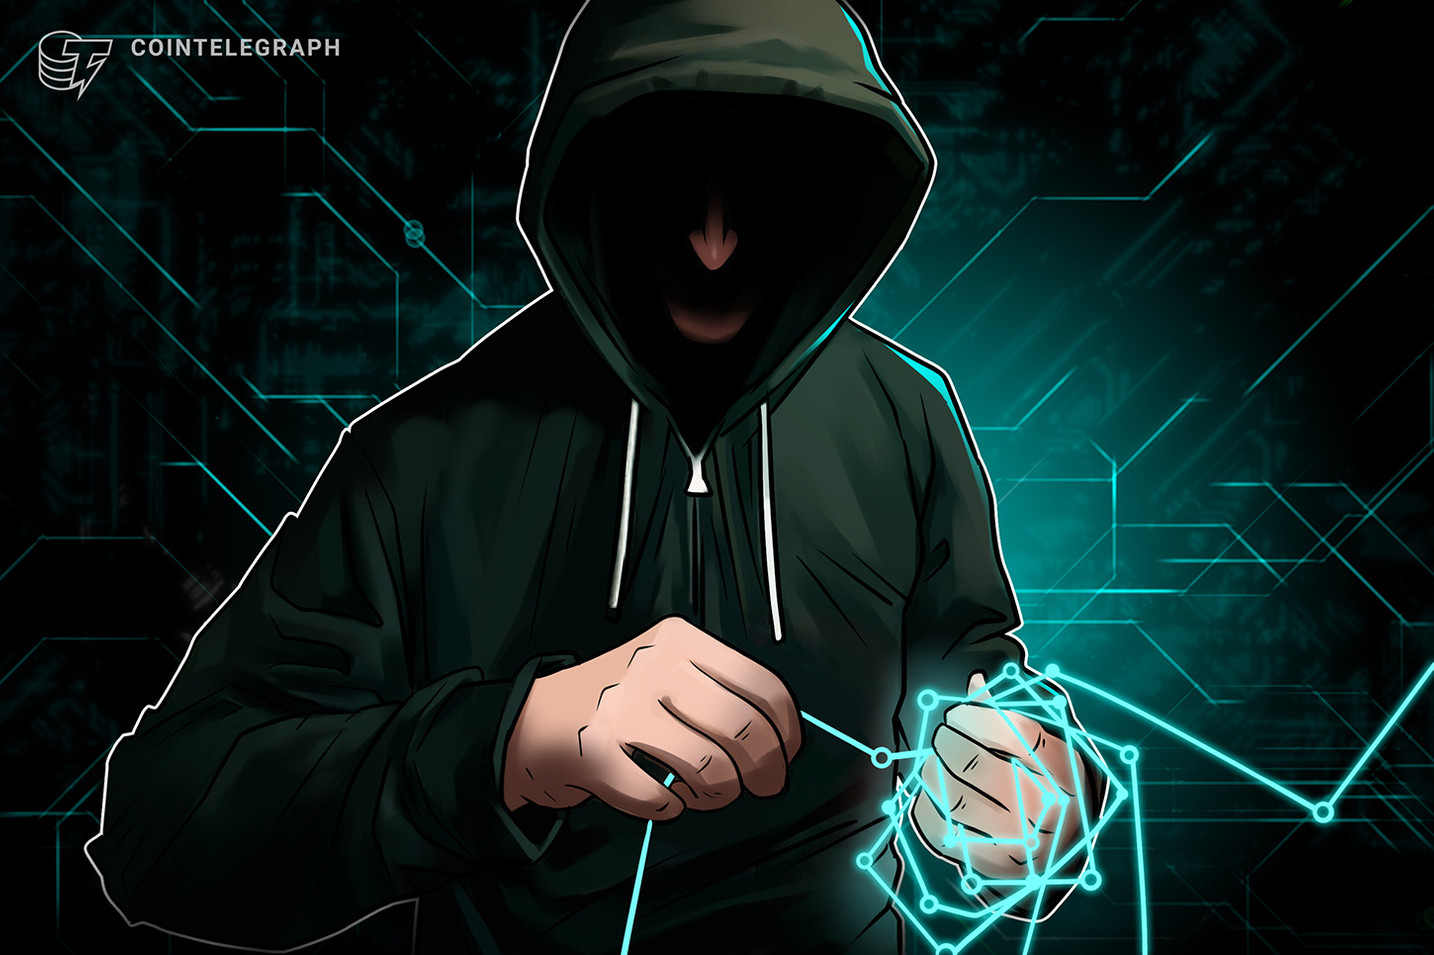 Whitehat hacker receives $1.5M bug bounty after patch pumps token price